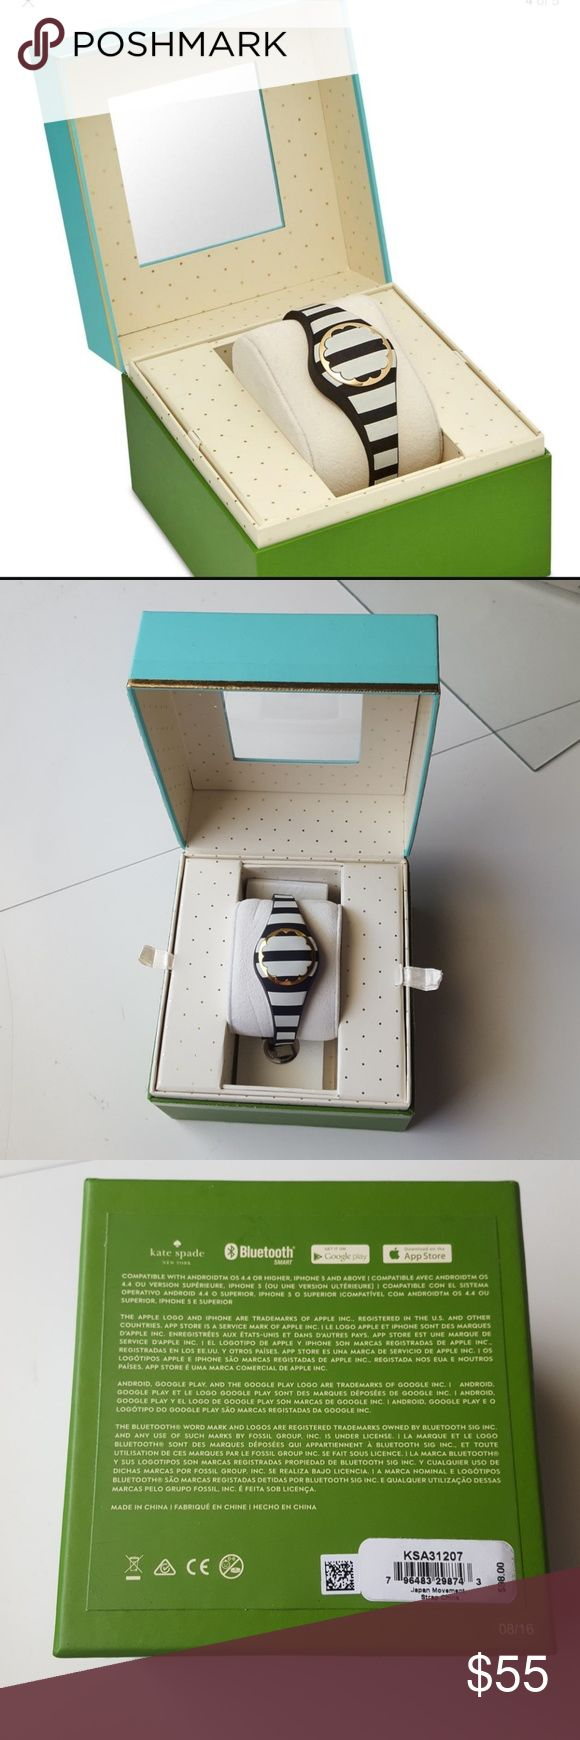 Kate Spade NewYork scallop Activity tracker Women's black and cream strip tones Tracker 26mm Brand new,  authentic  -Chic element provide motivation,success and organized tools -receive LED light notifications, control music -non charging or replace battery up 6 months  - Bluetooth connectivity with android 4.4+ or iPhone 5/iOS 8.2+ -water resistant to 30 meters   Available Macy's  $98 + tax kate spade Other